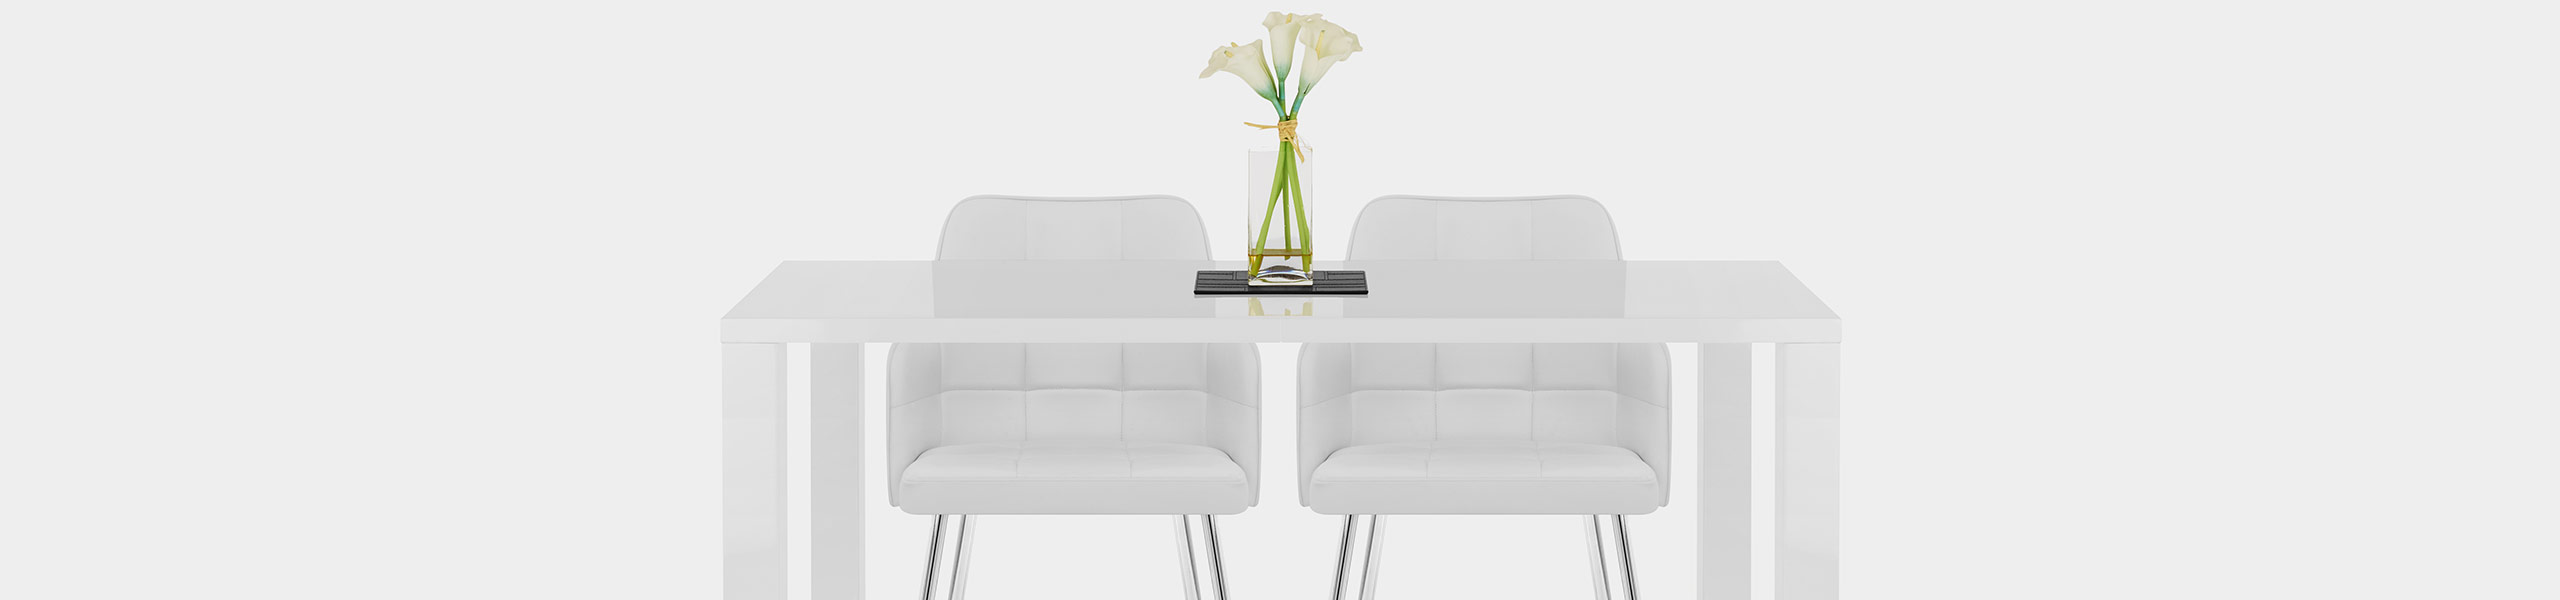 Dawn Dining Chair White Video Banner